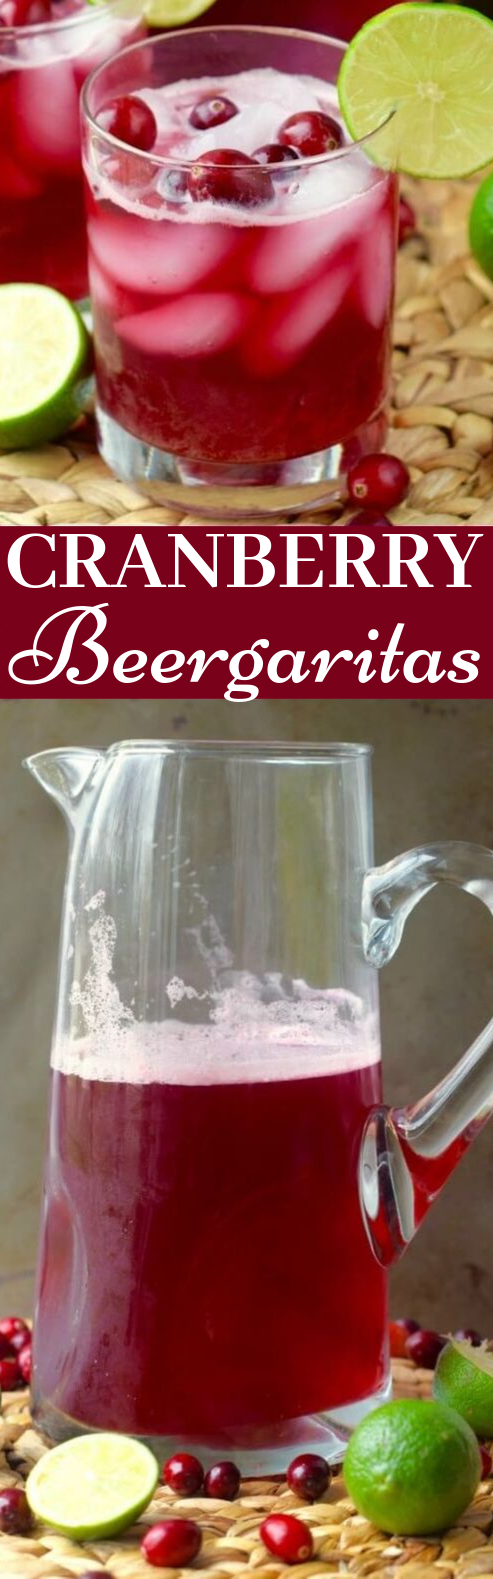 Cranberry Beergaritas #drinks #alcohol